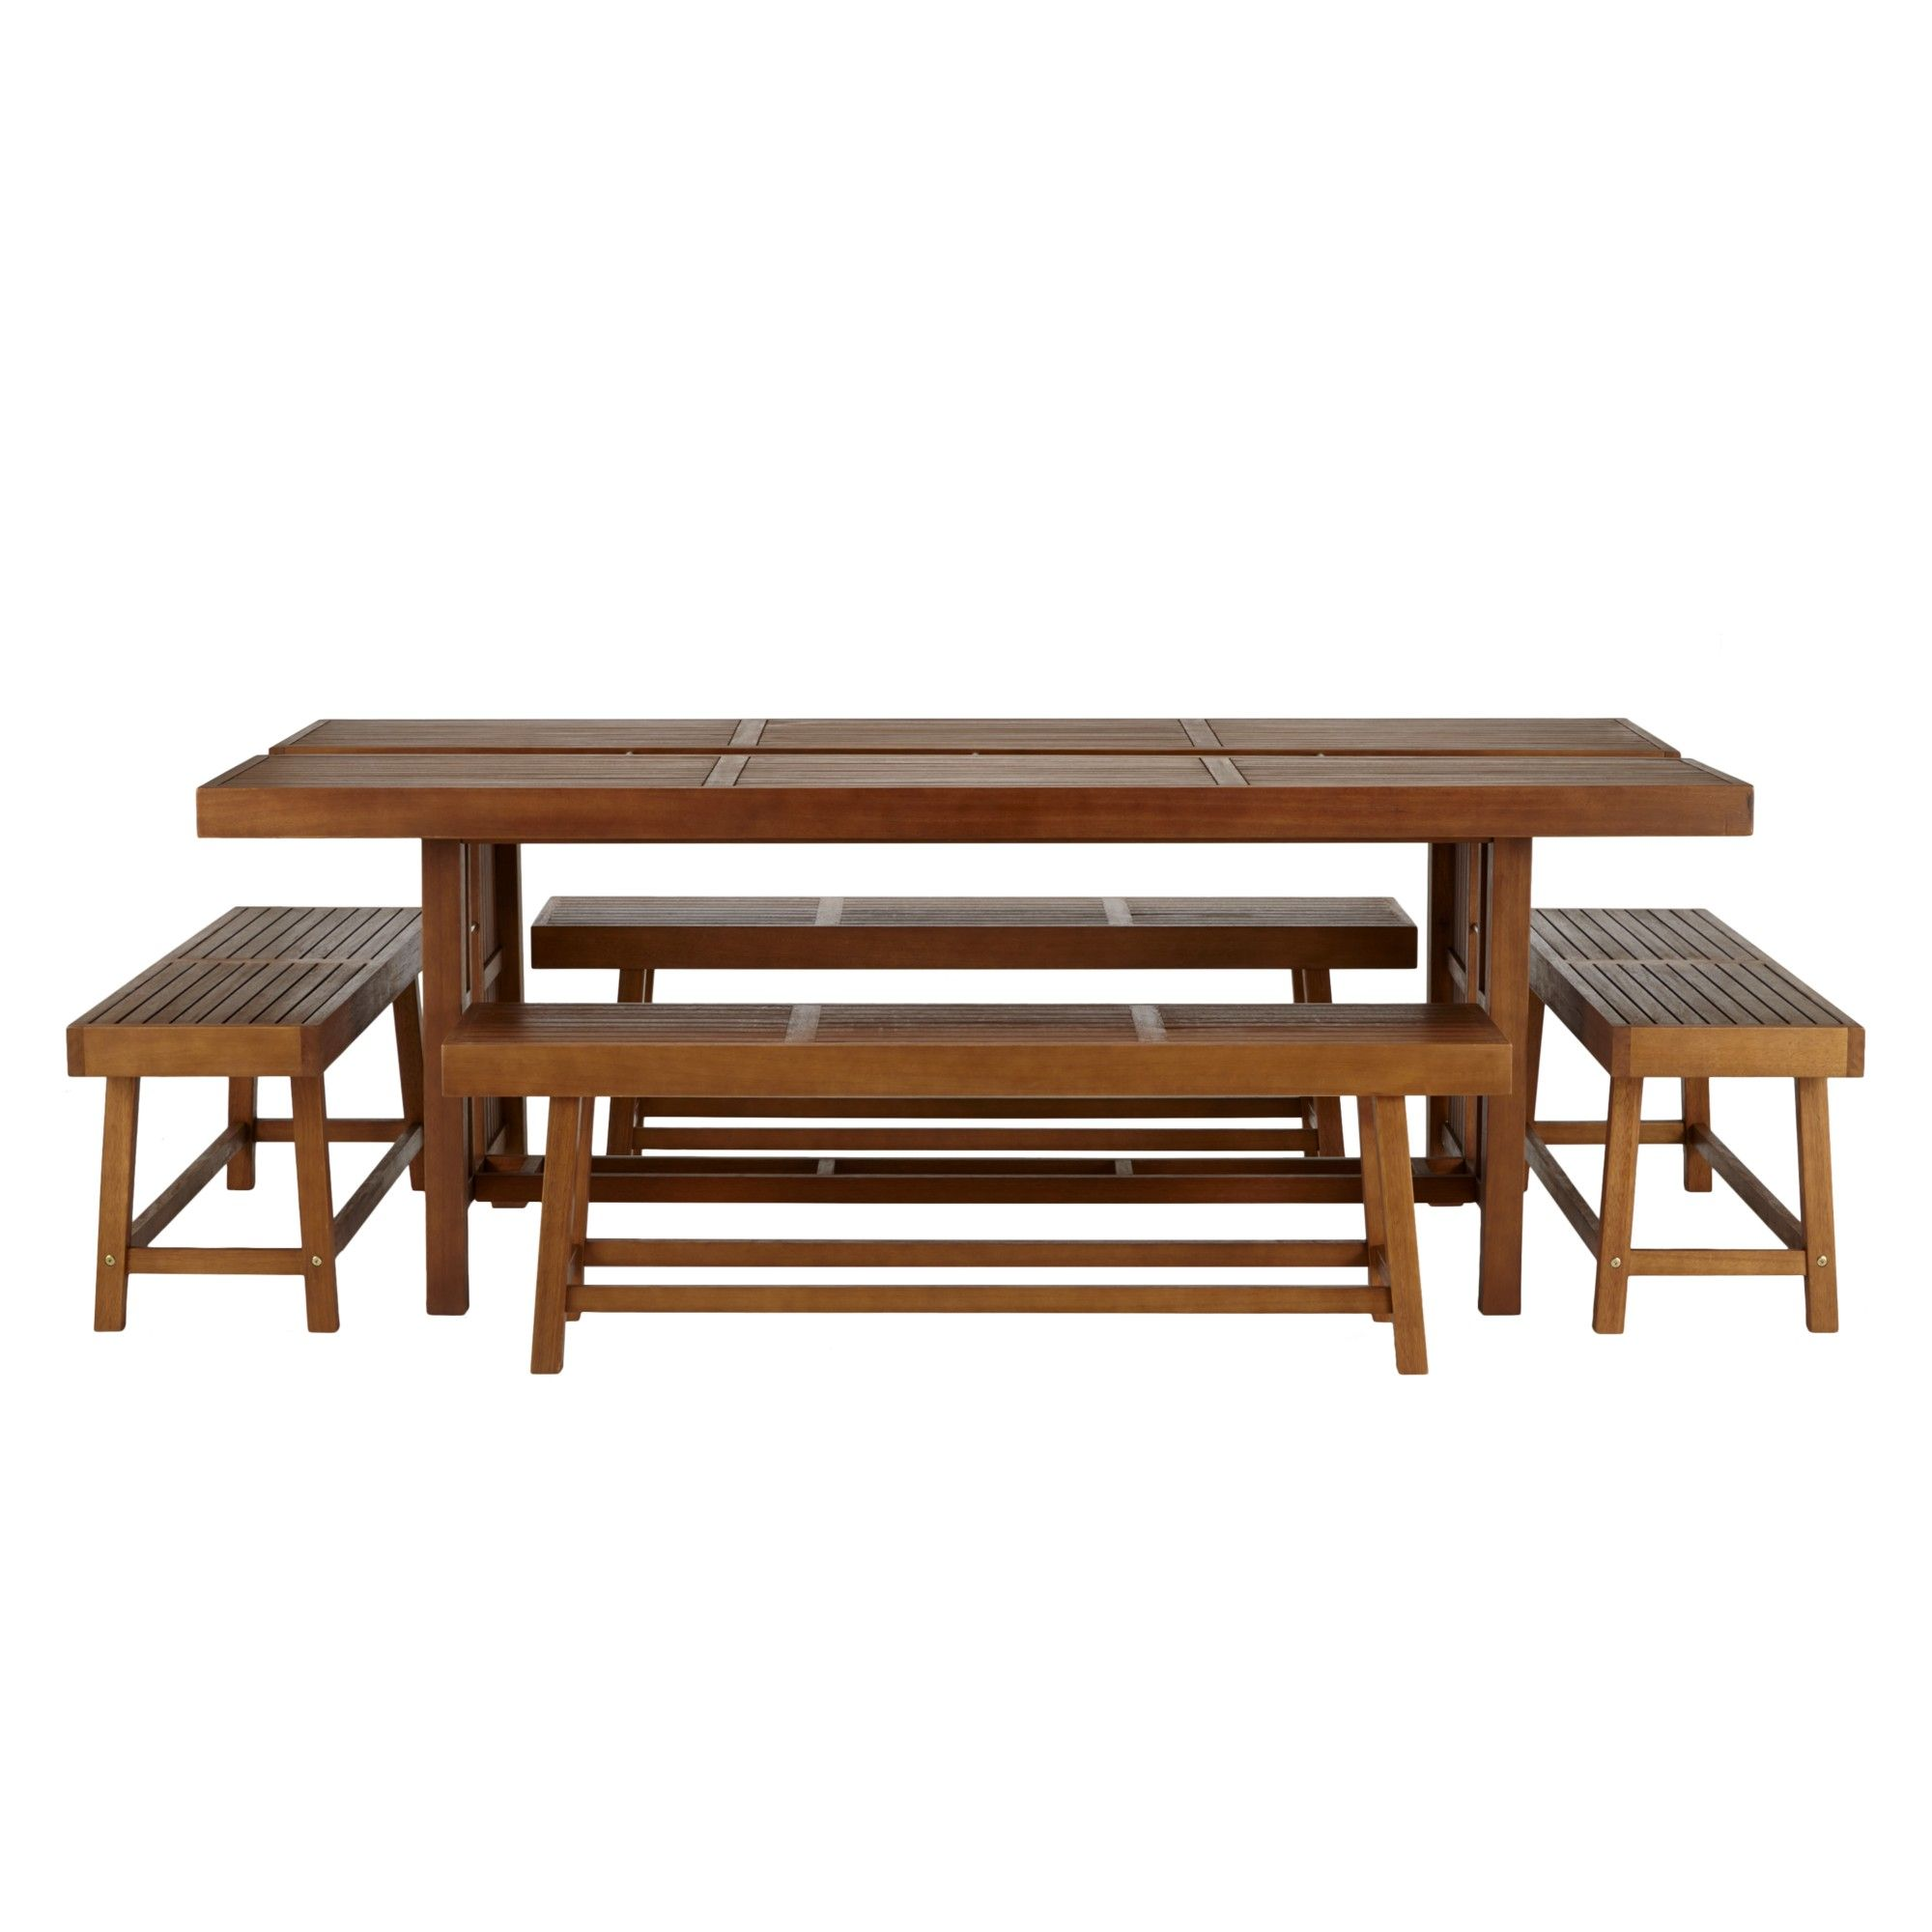 John Lewis Drift 8 Seater Outdoor Dining Table And 2 Benches FSC Certified